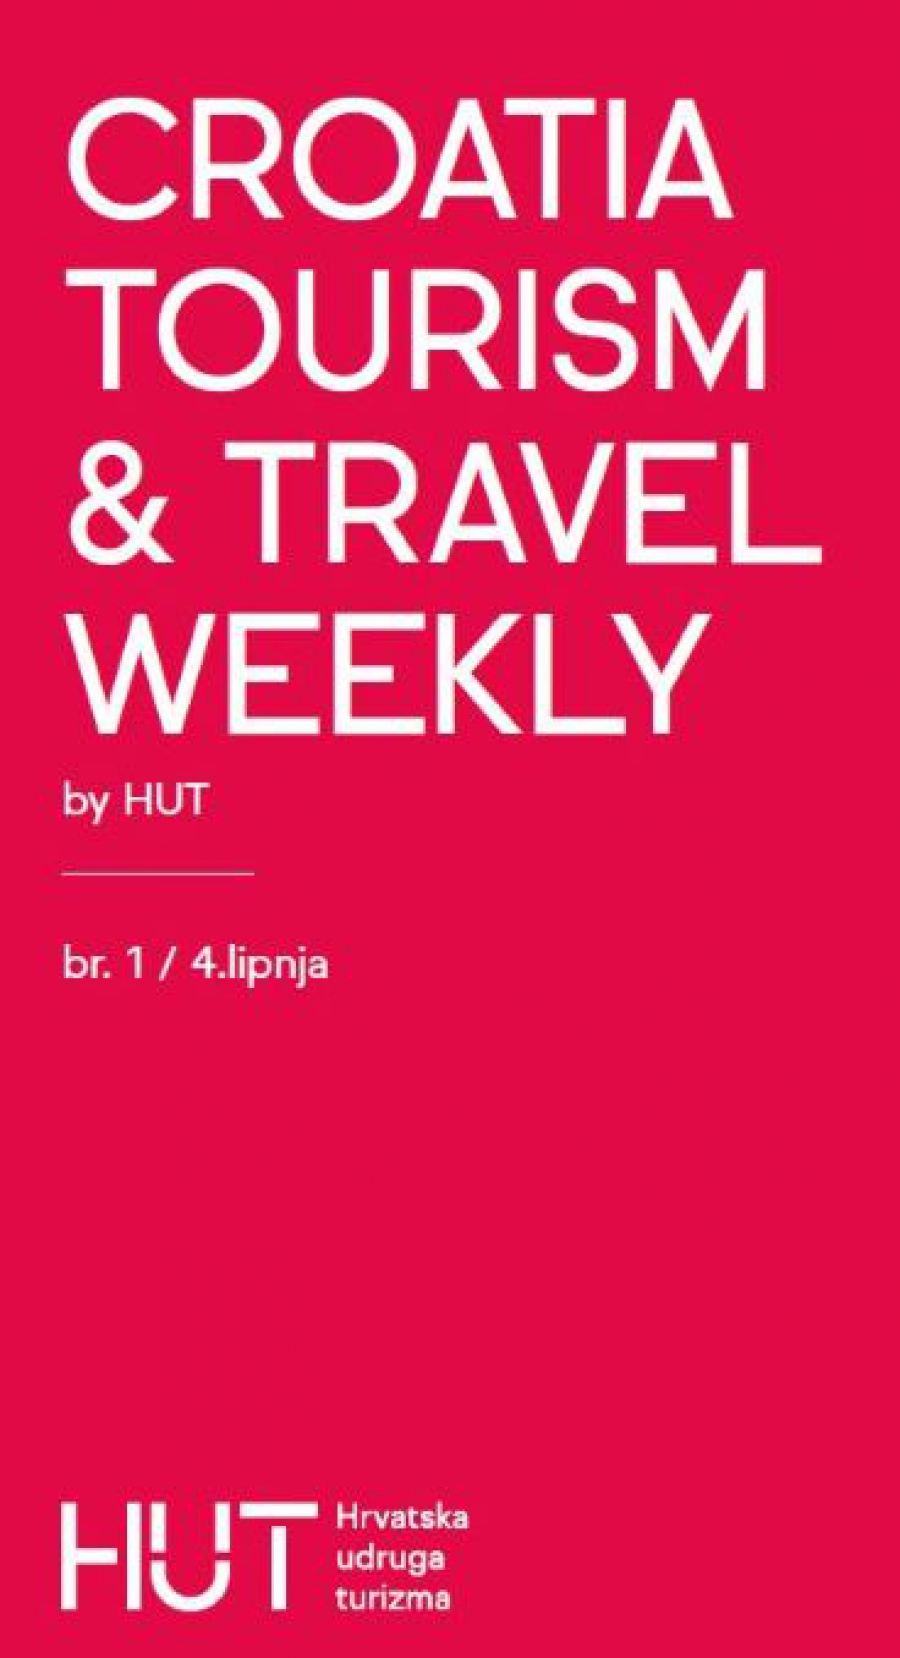 Croatia Tourism & Travel Weekly